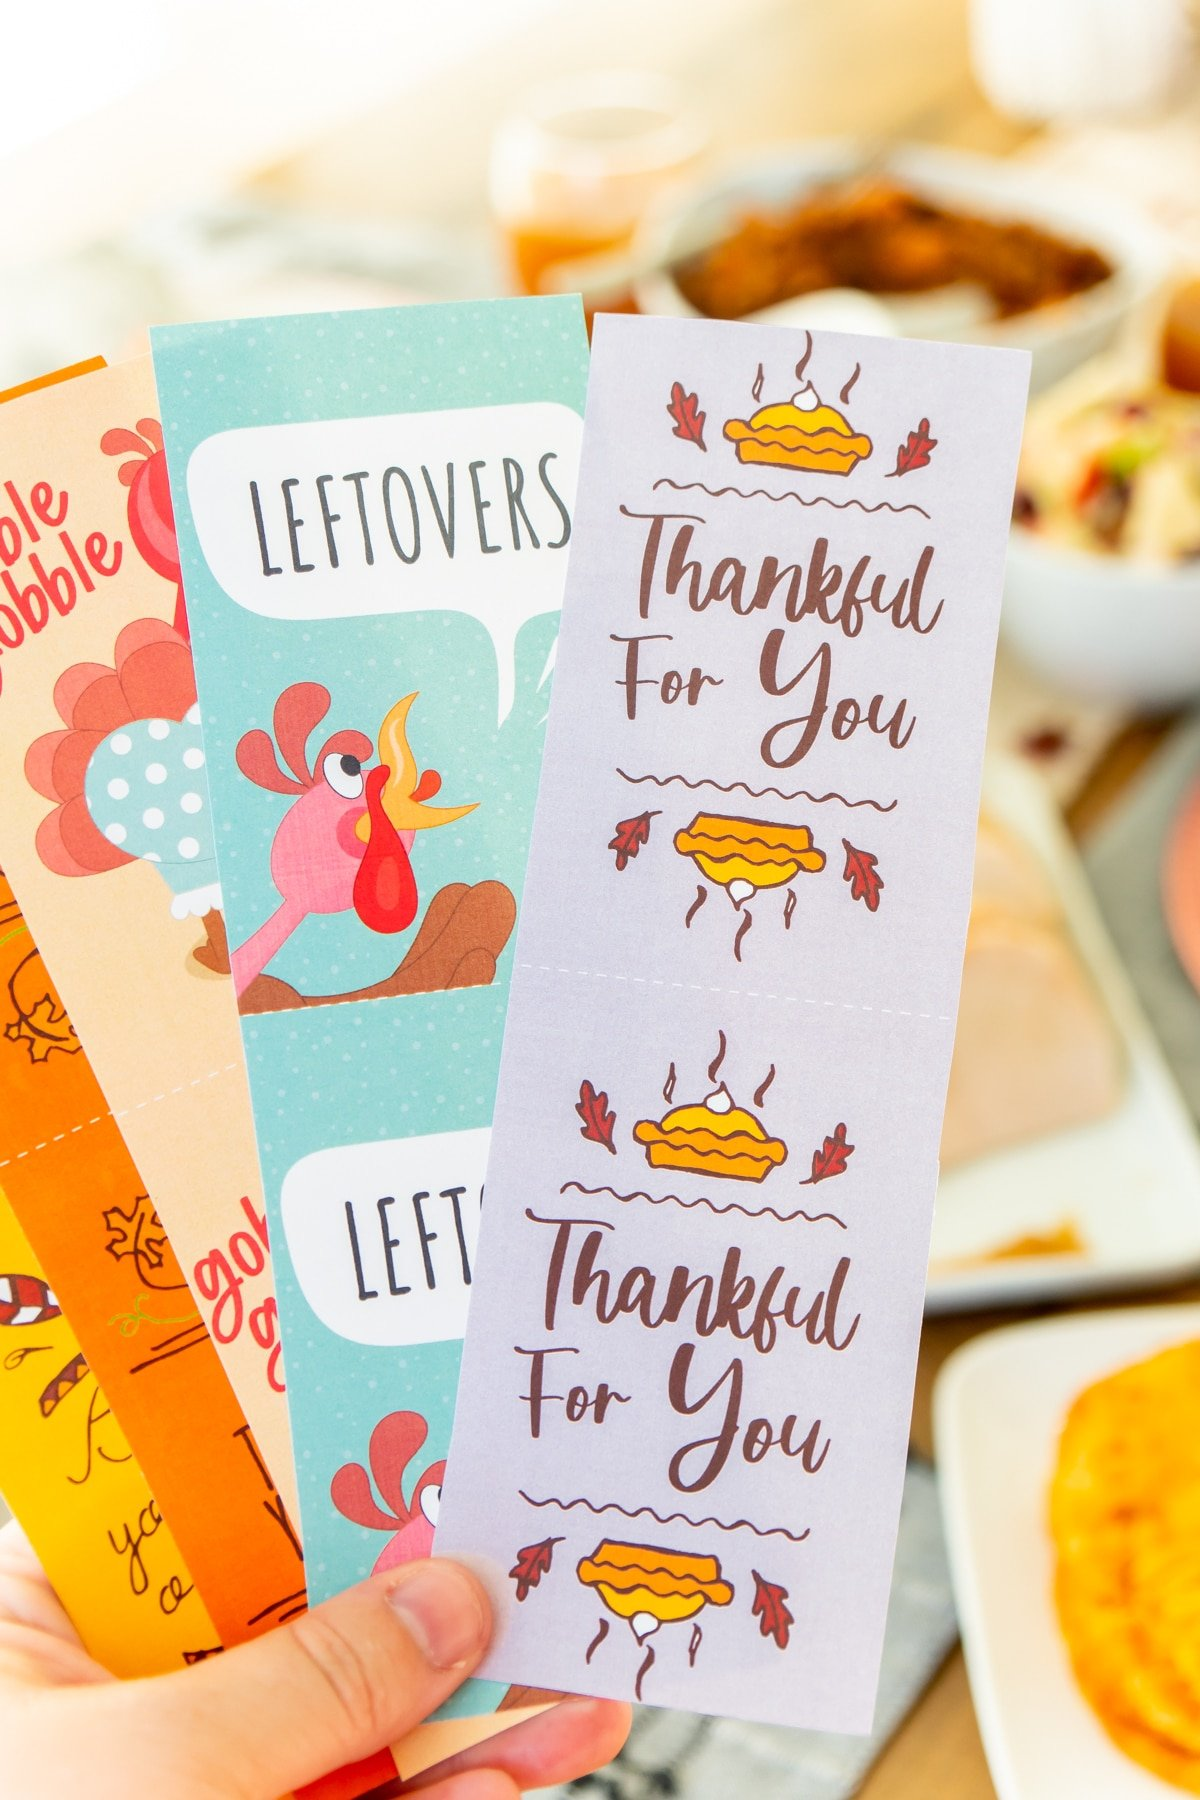 Thanksgiving gift tags being held by a woman's hand